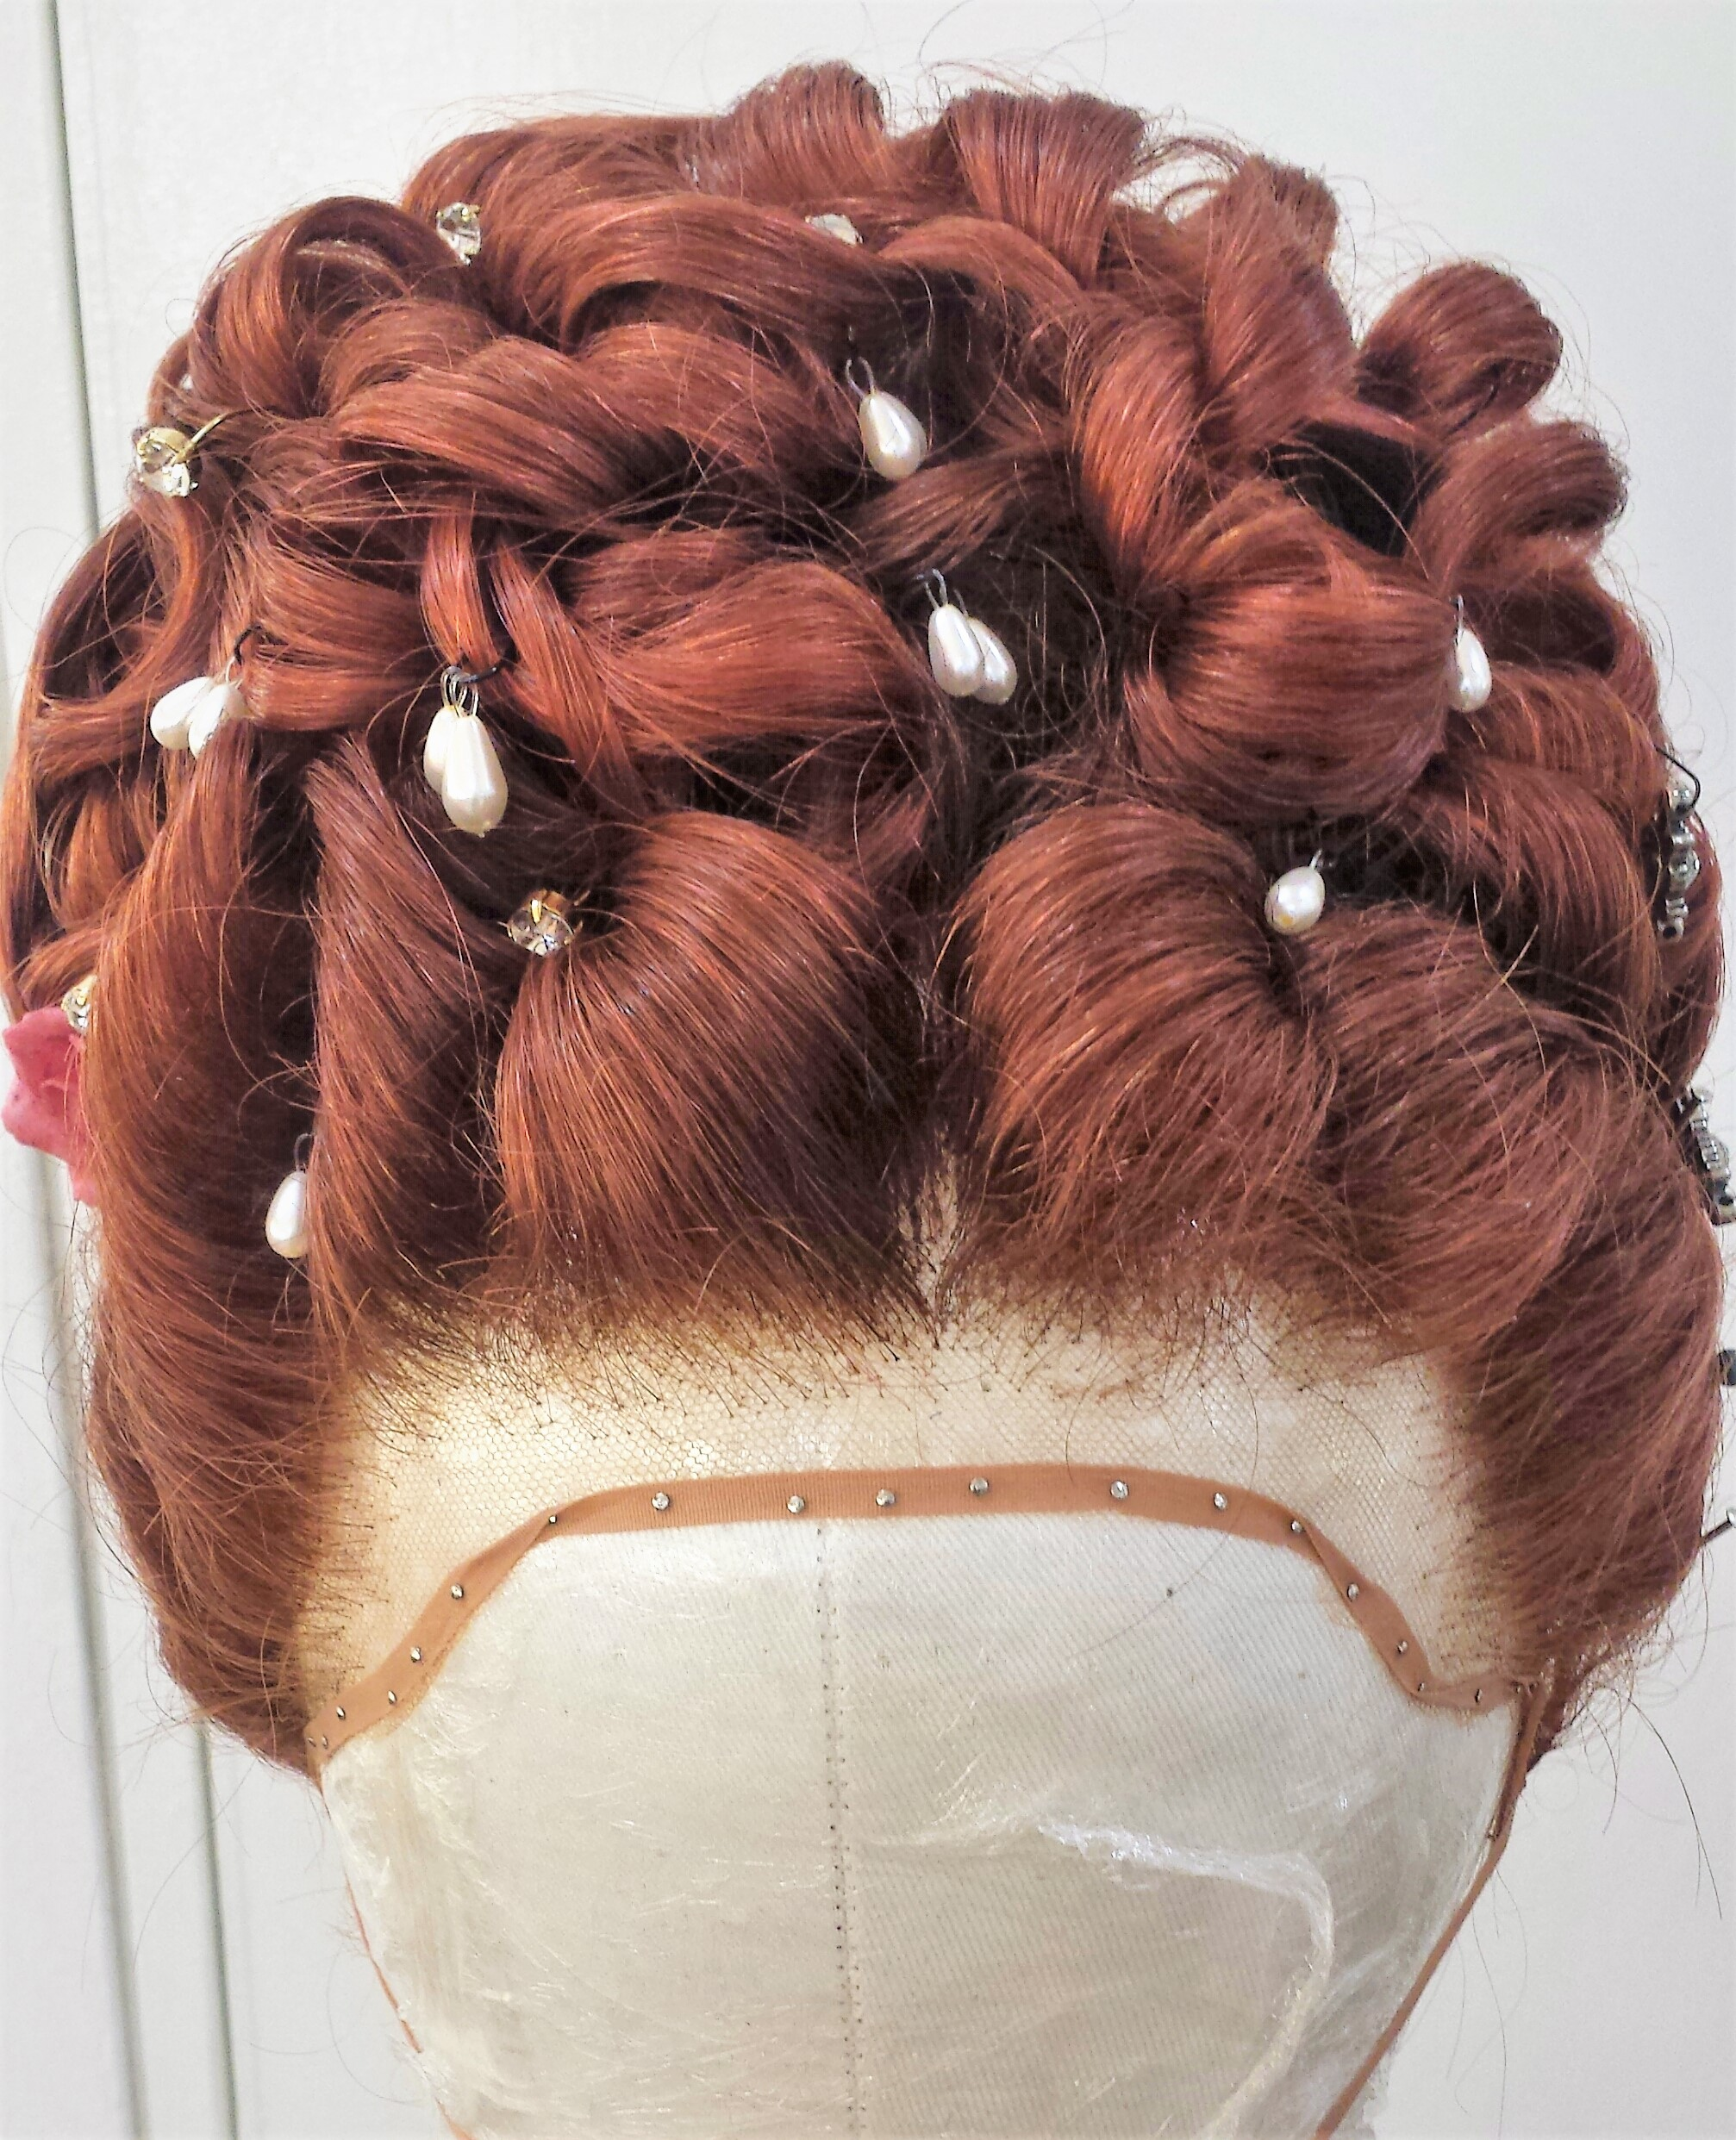 The Wig Room Training Academy - Victorian Red Hair Wig with Pearls